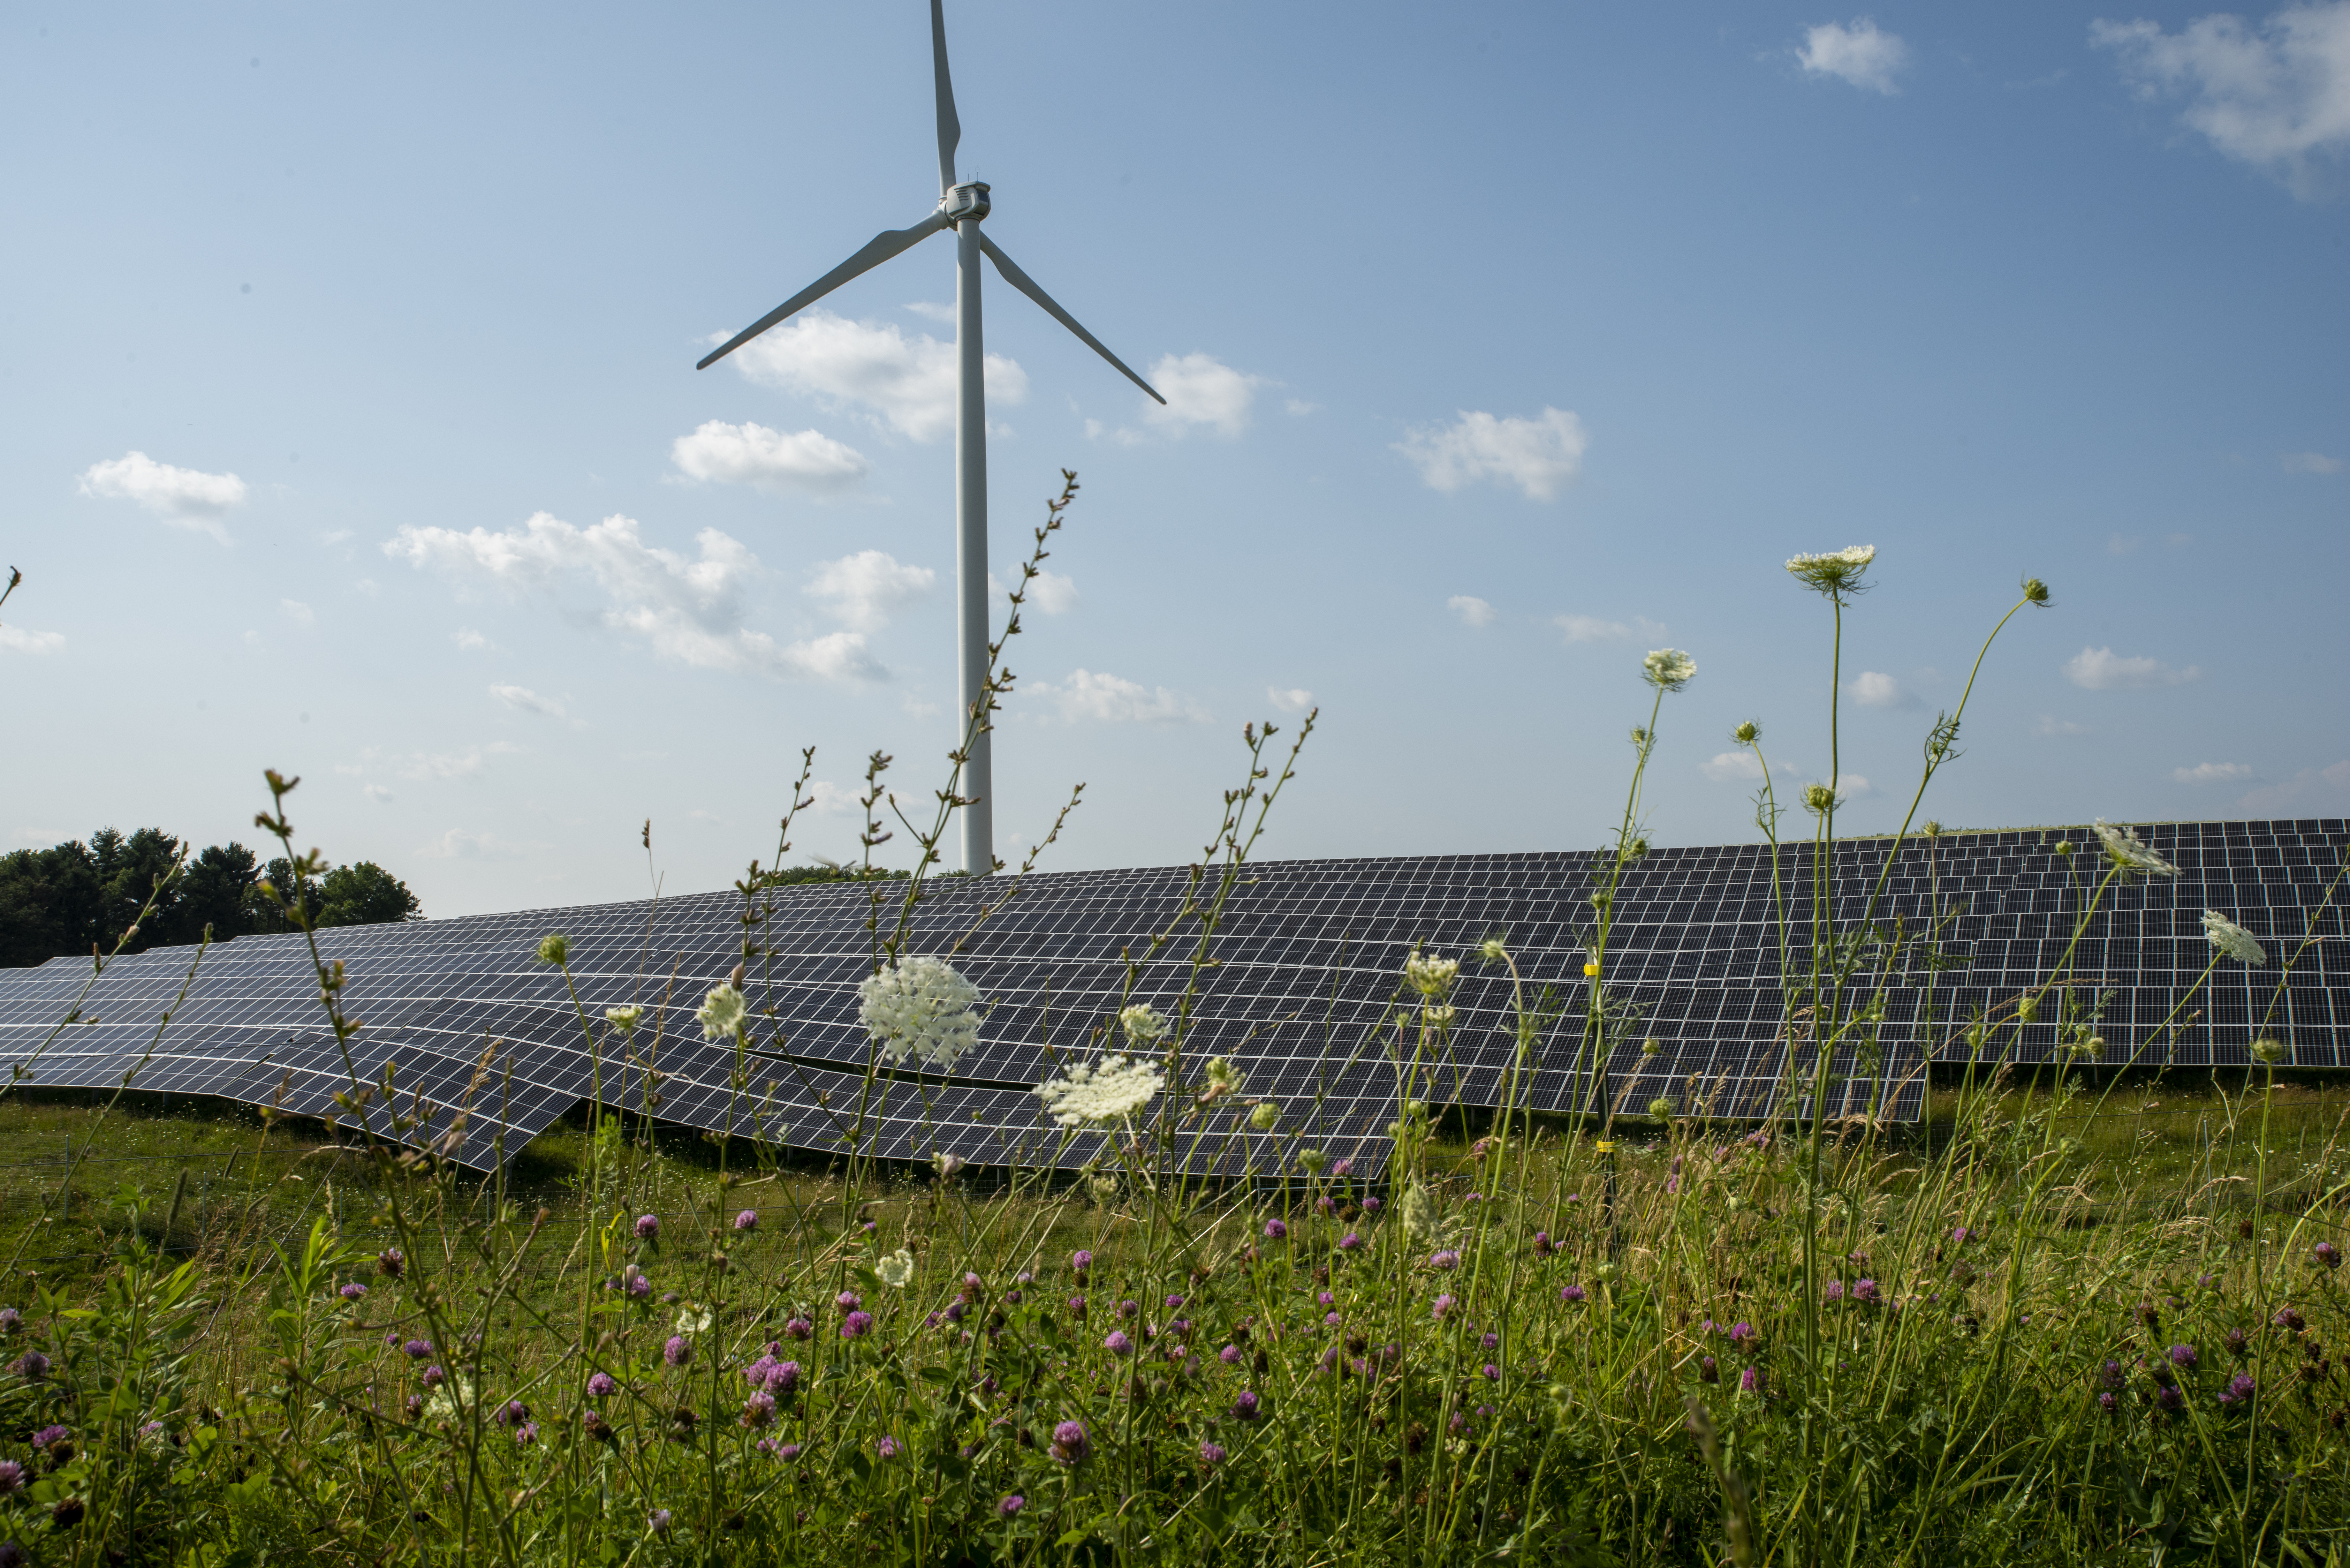 Wildflowers in the foreground with solar panels and a wind turbine against a blue sky.